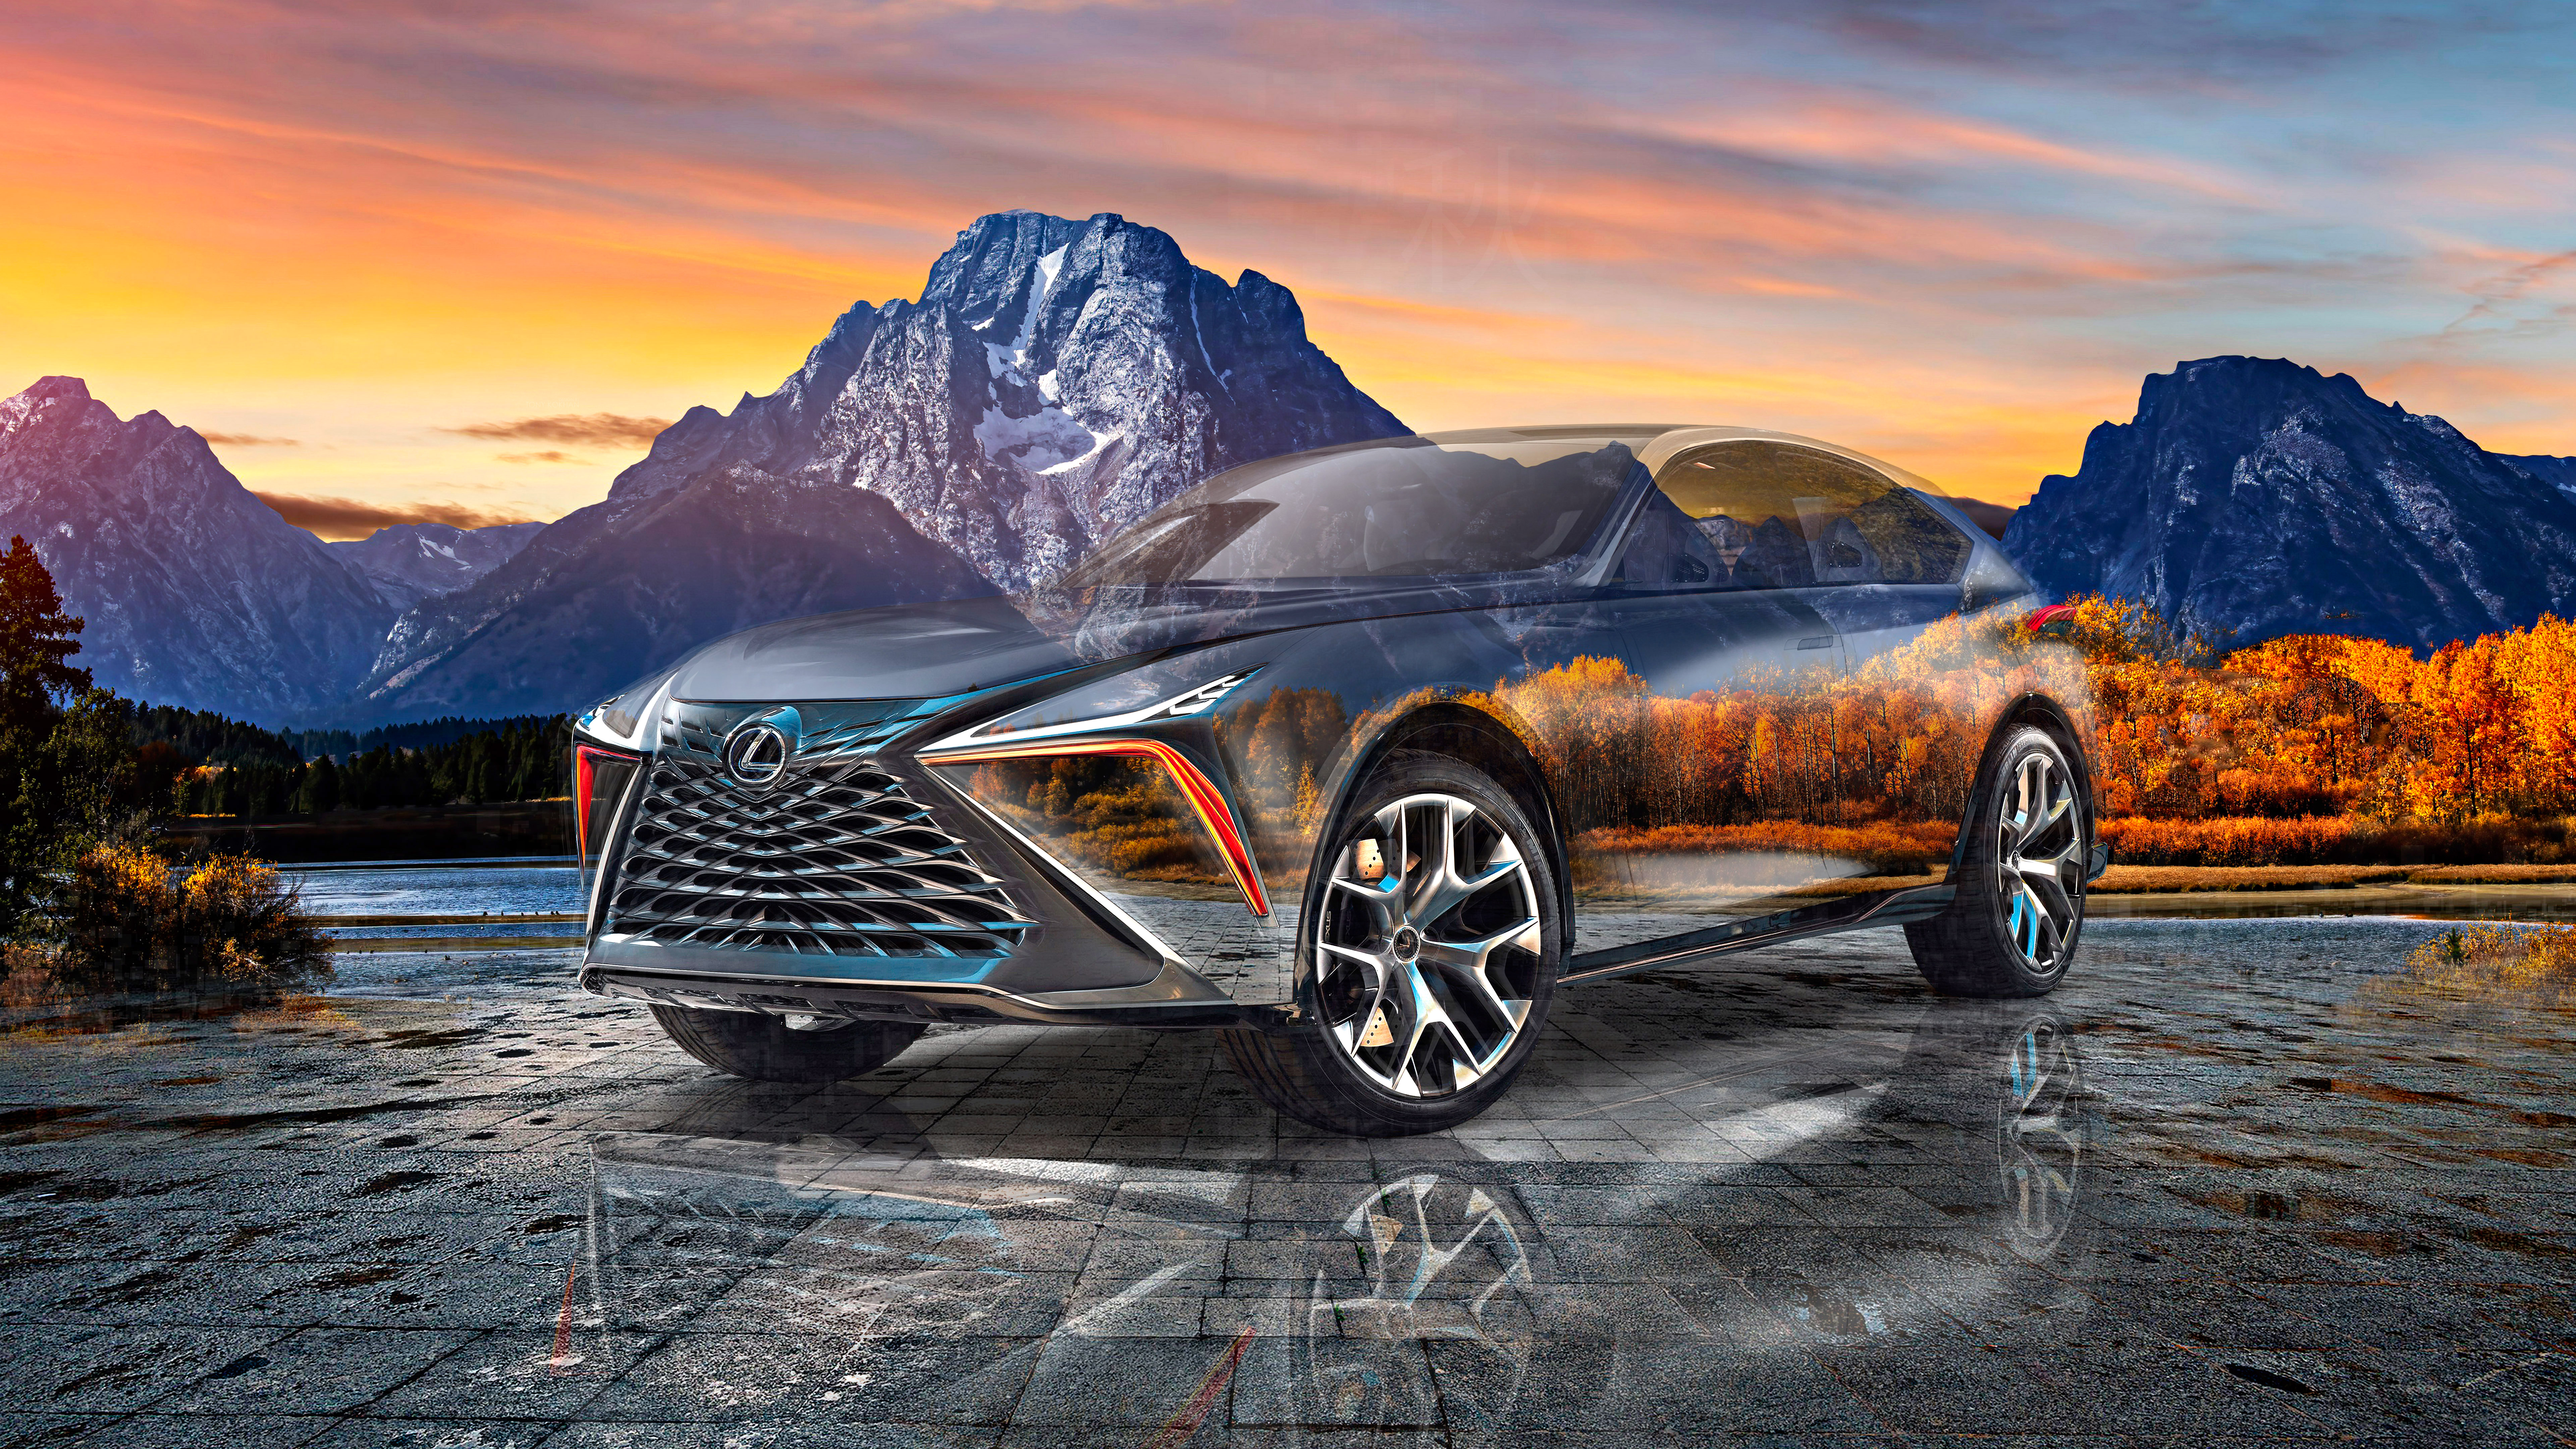 Lexus-LF-1-Limitless-Super-Crystal-Autumn-Soul-Grand-Teton-National-Park-USA-Nature-Art-Car-2020-Multicolors-8K-Wallpapers-design-by-Tony-Kokhan-www.el-tony.com-image